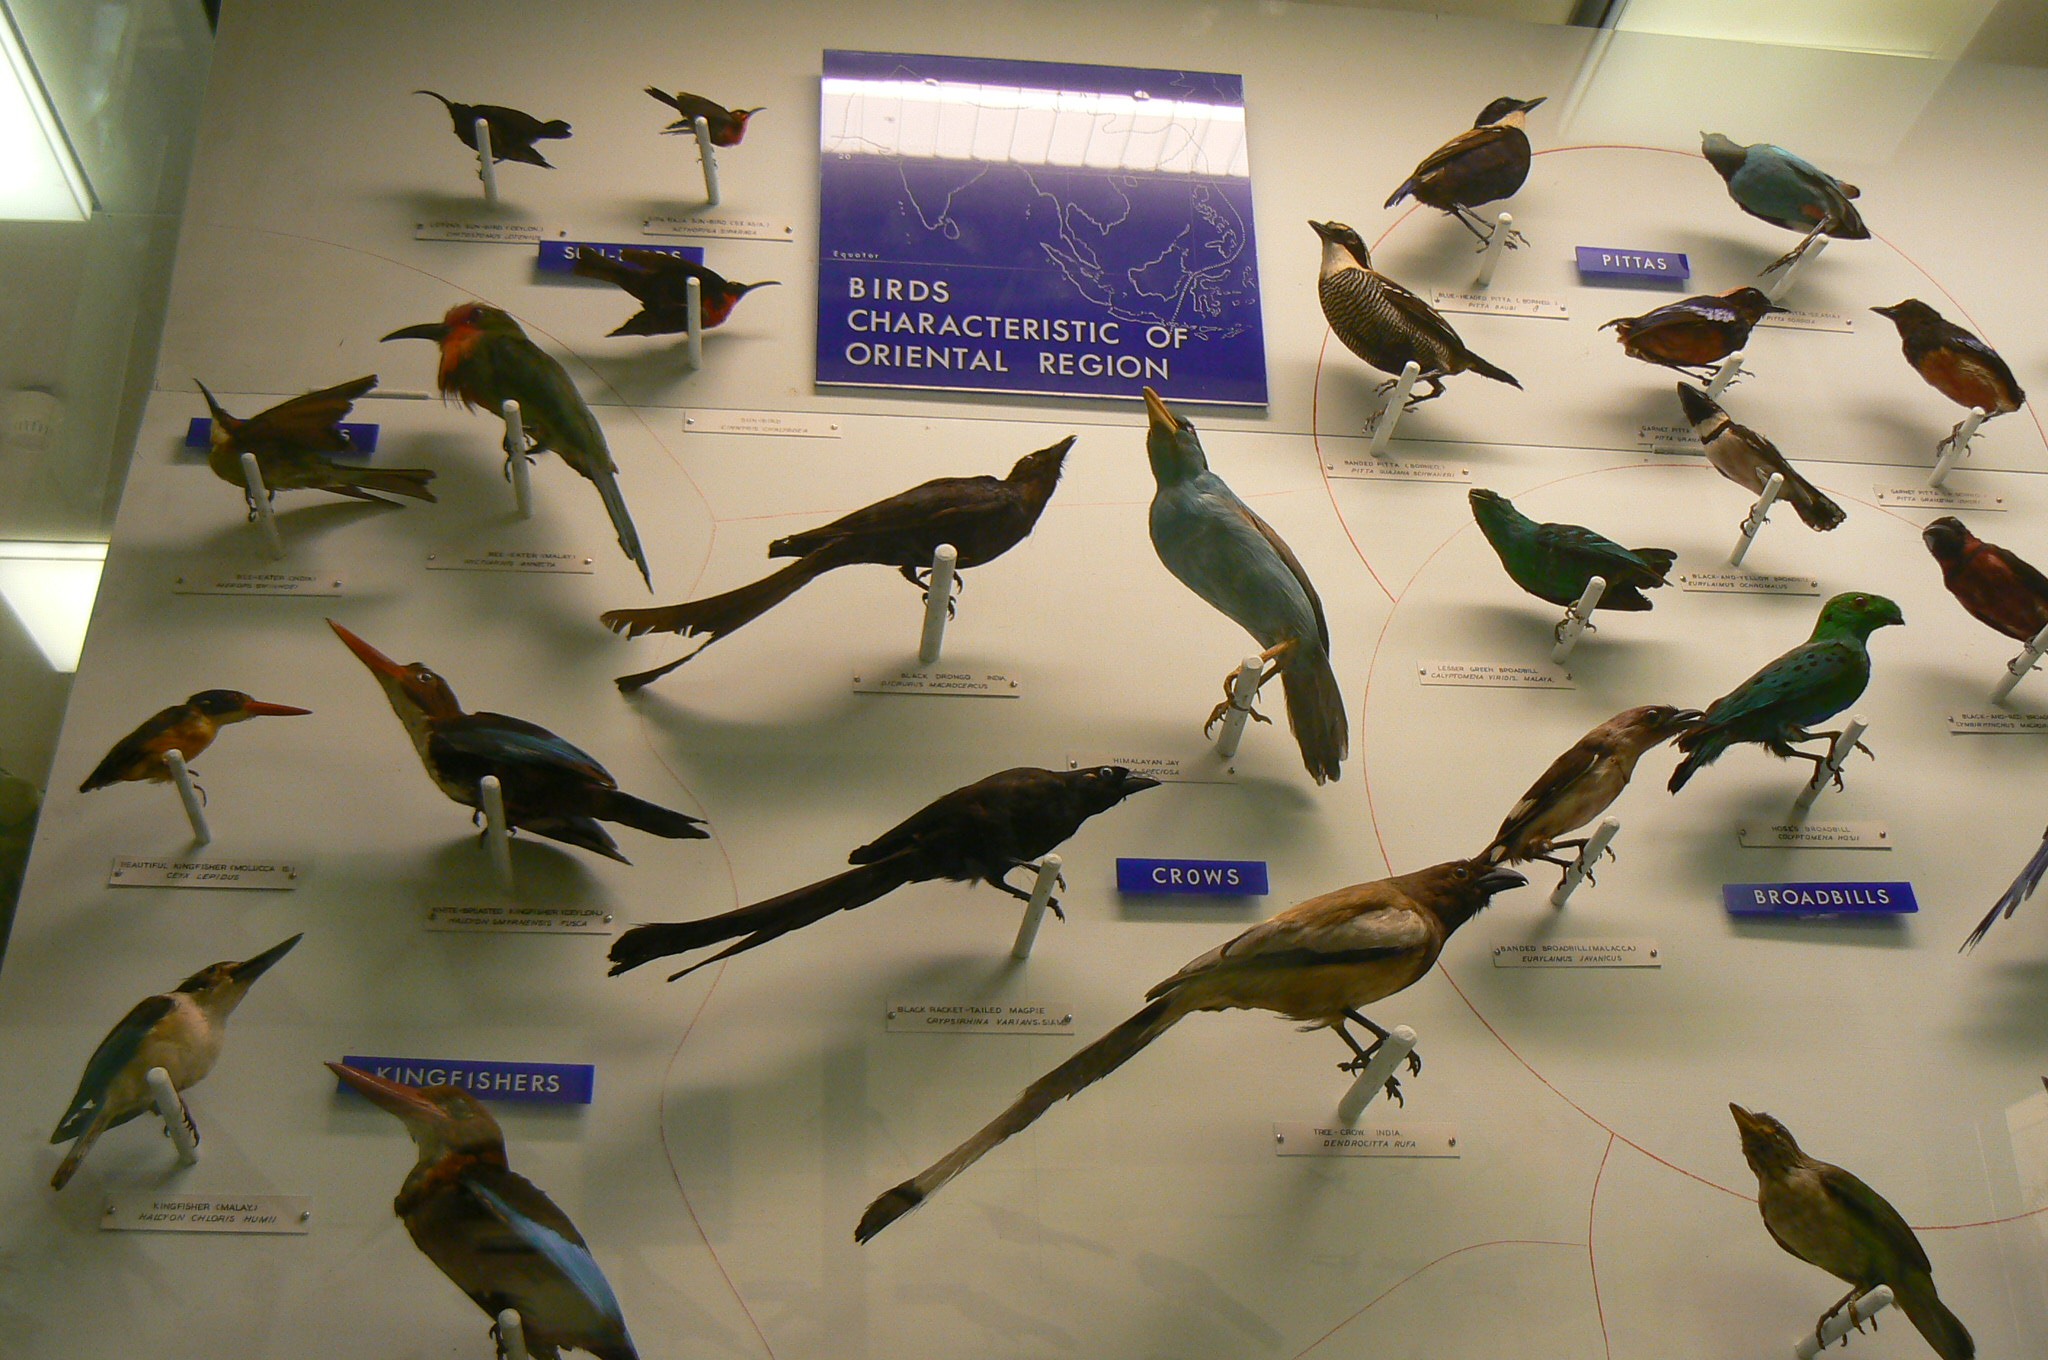 Bell Pettigrew Museum of Natural History Fife and Angus, Bird display at the Bell Pettigrew Museum | Museum Collections Blog